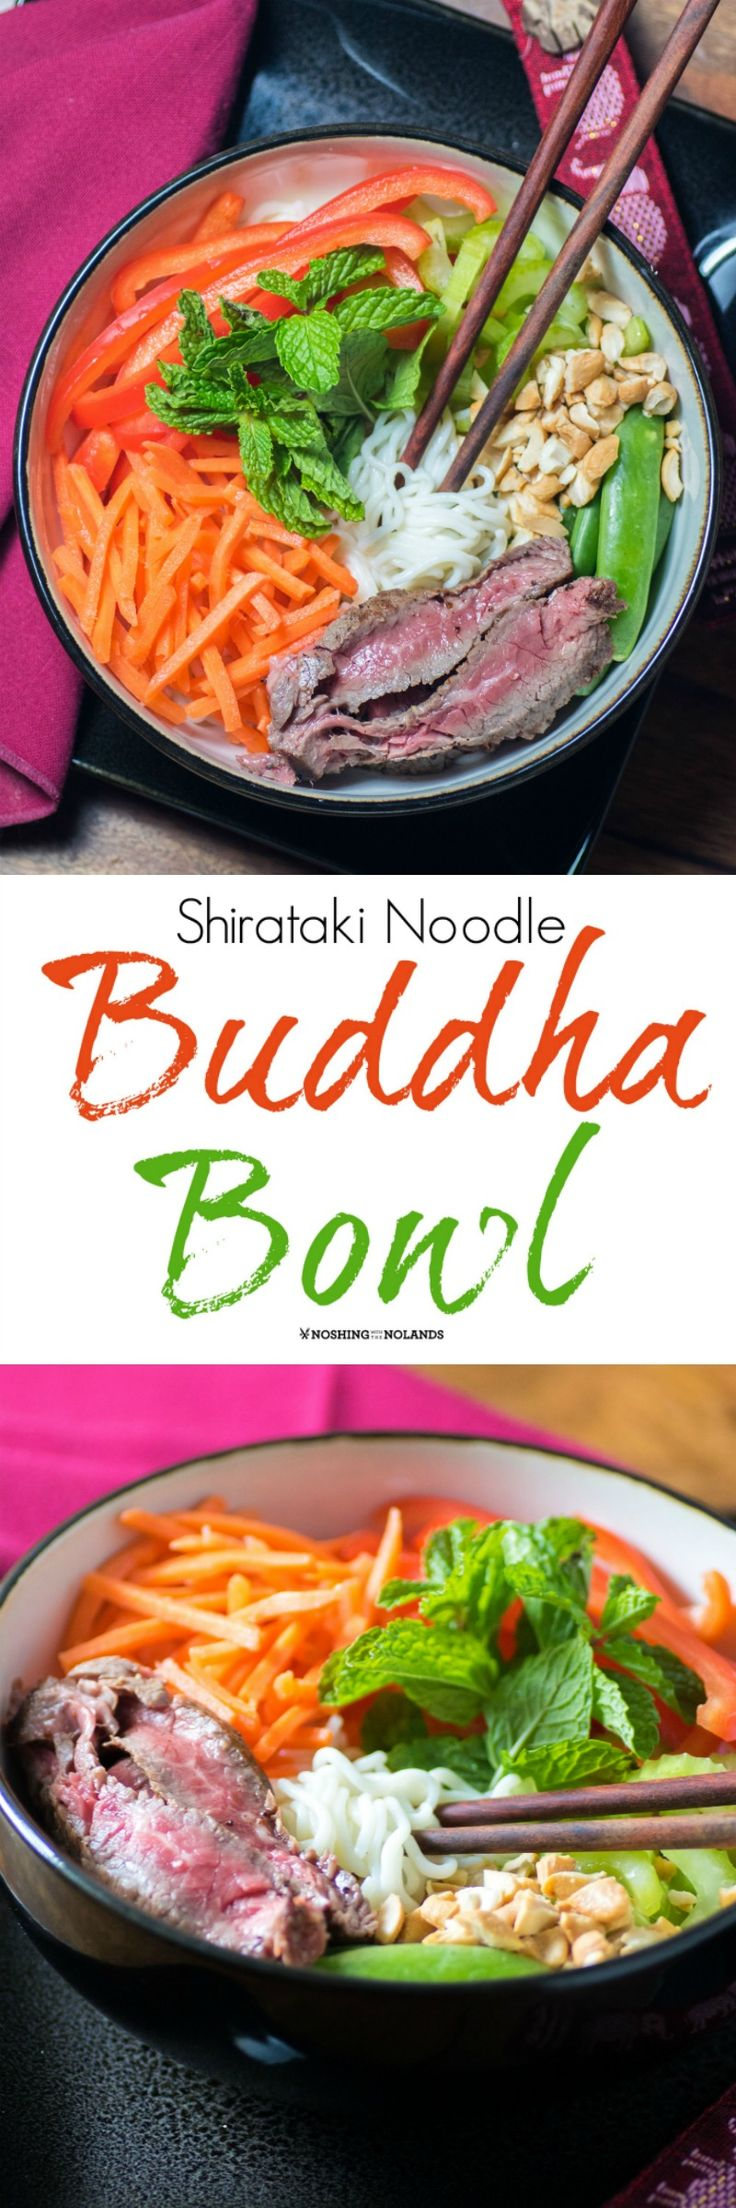 Tofu Shirataki Noodle Buddha Bowl by Noshing With The Nolands is a quick and easy dinner to pull together. You are going to love the umami flavor and fewer calories!